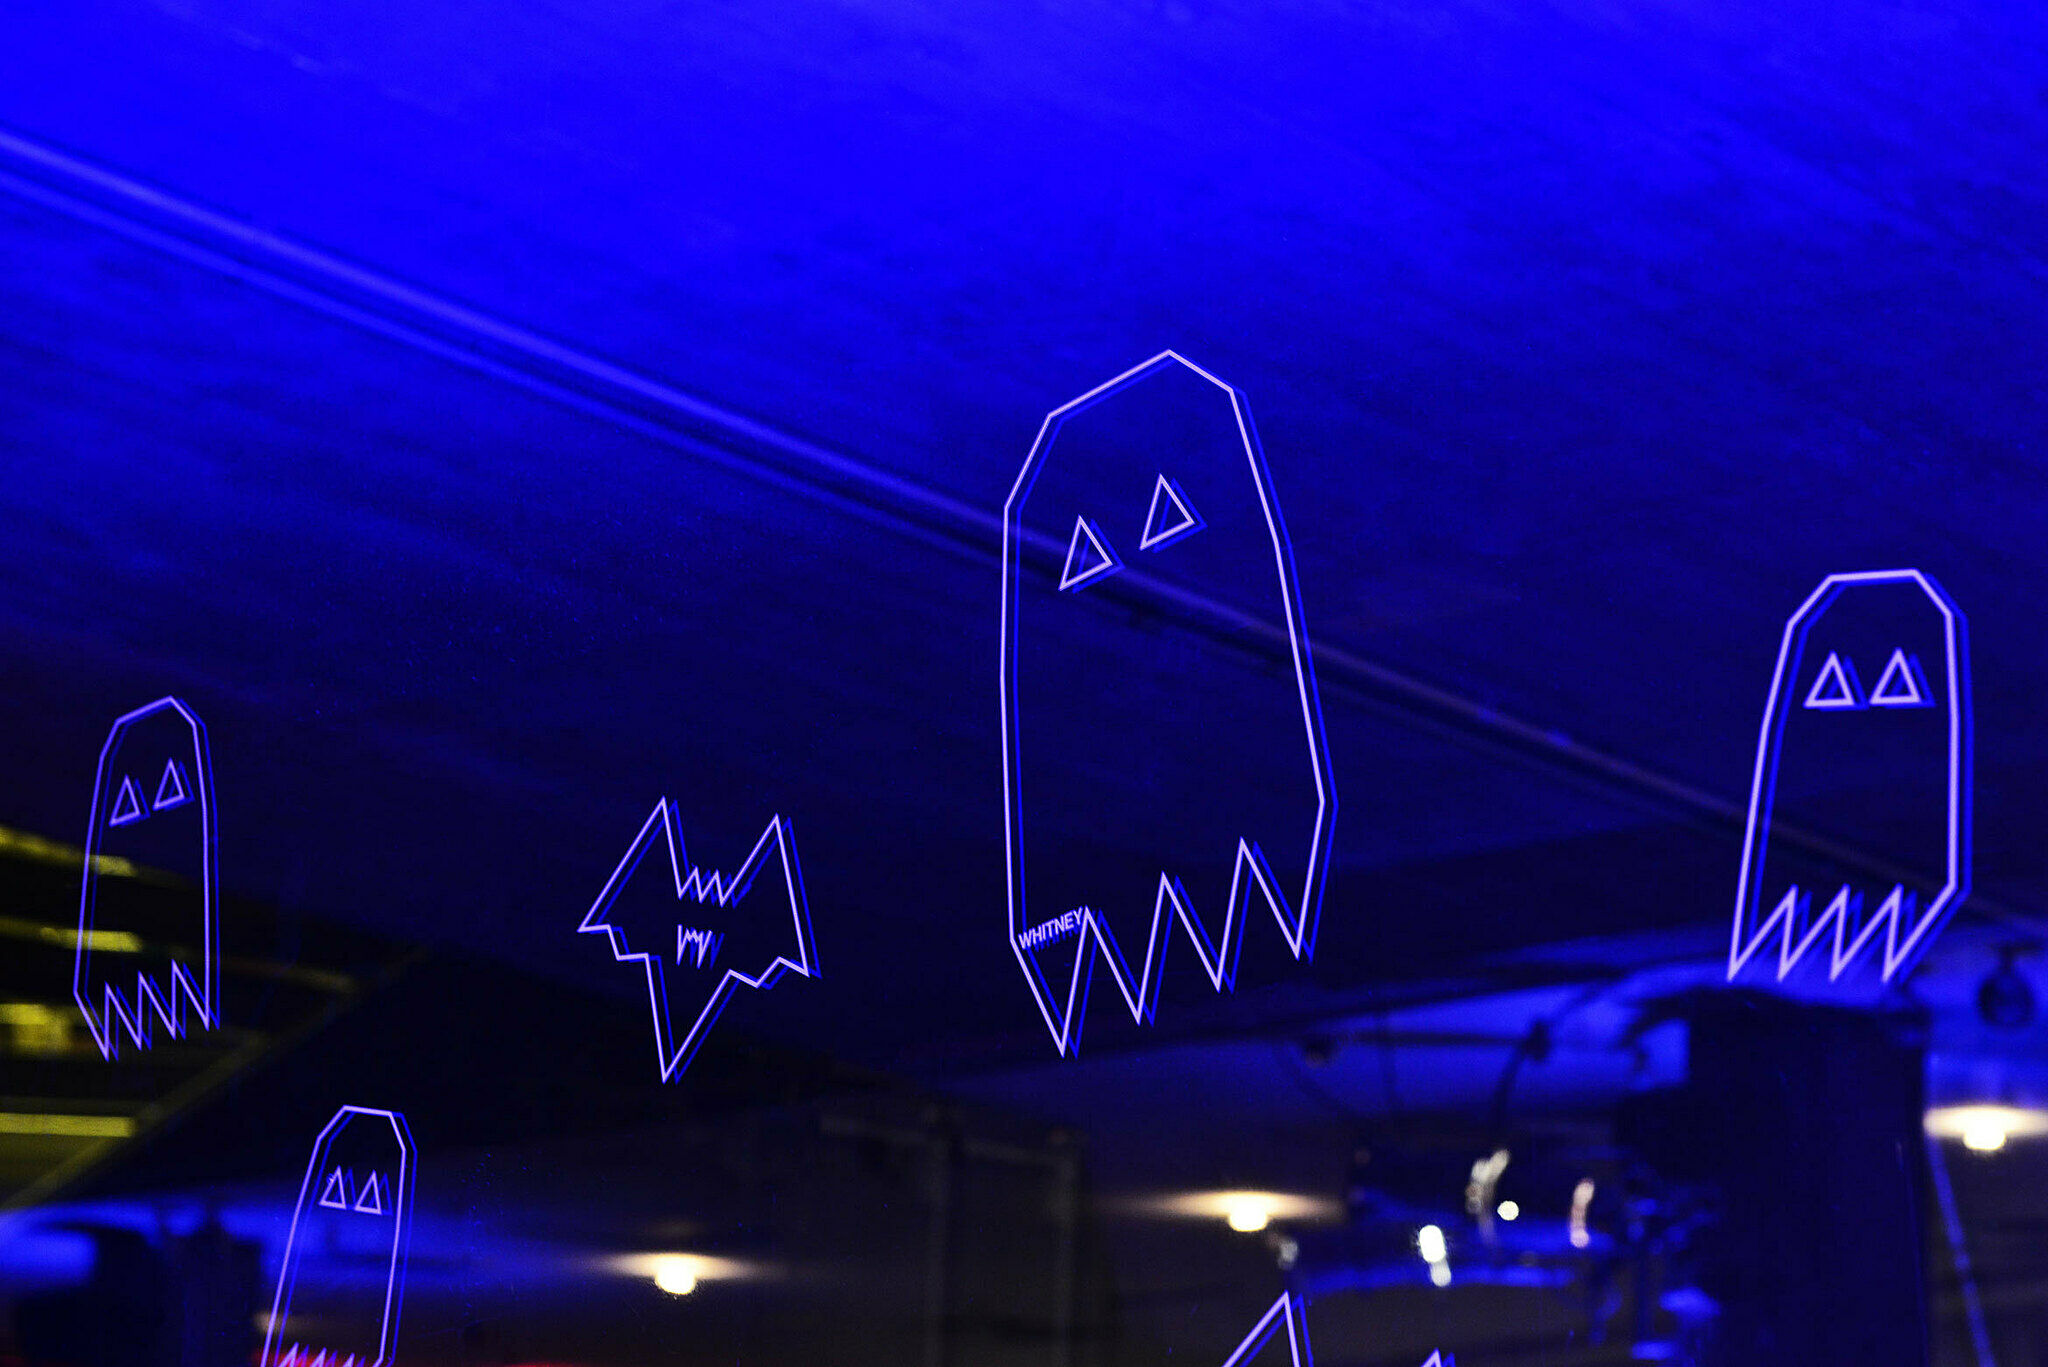 Neon purple outlined ghosts in window.